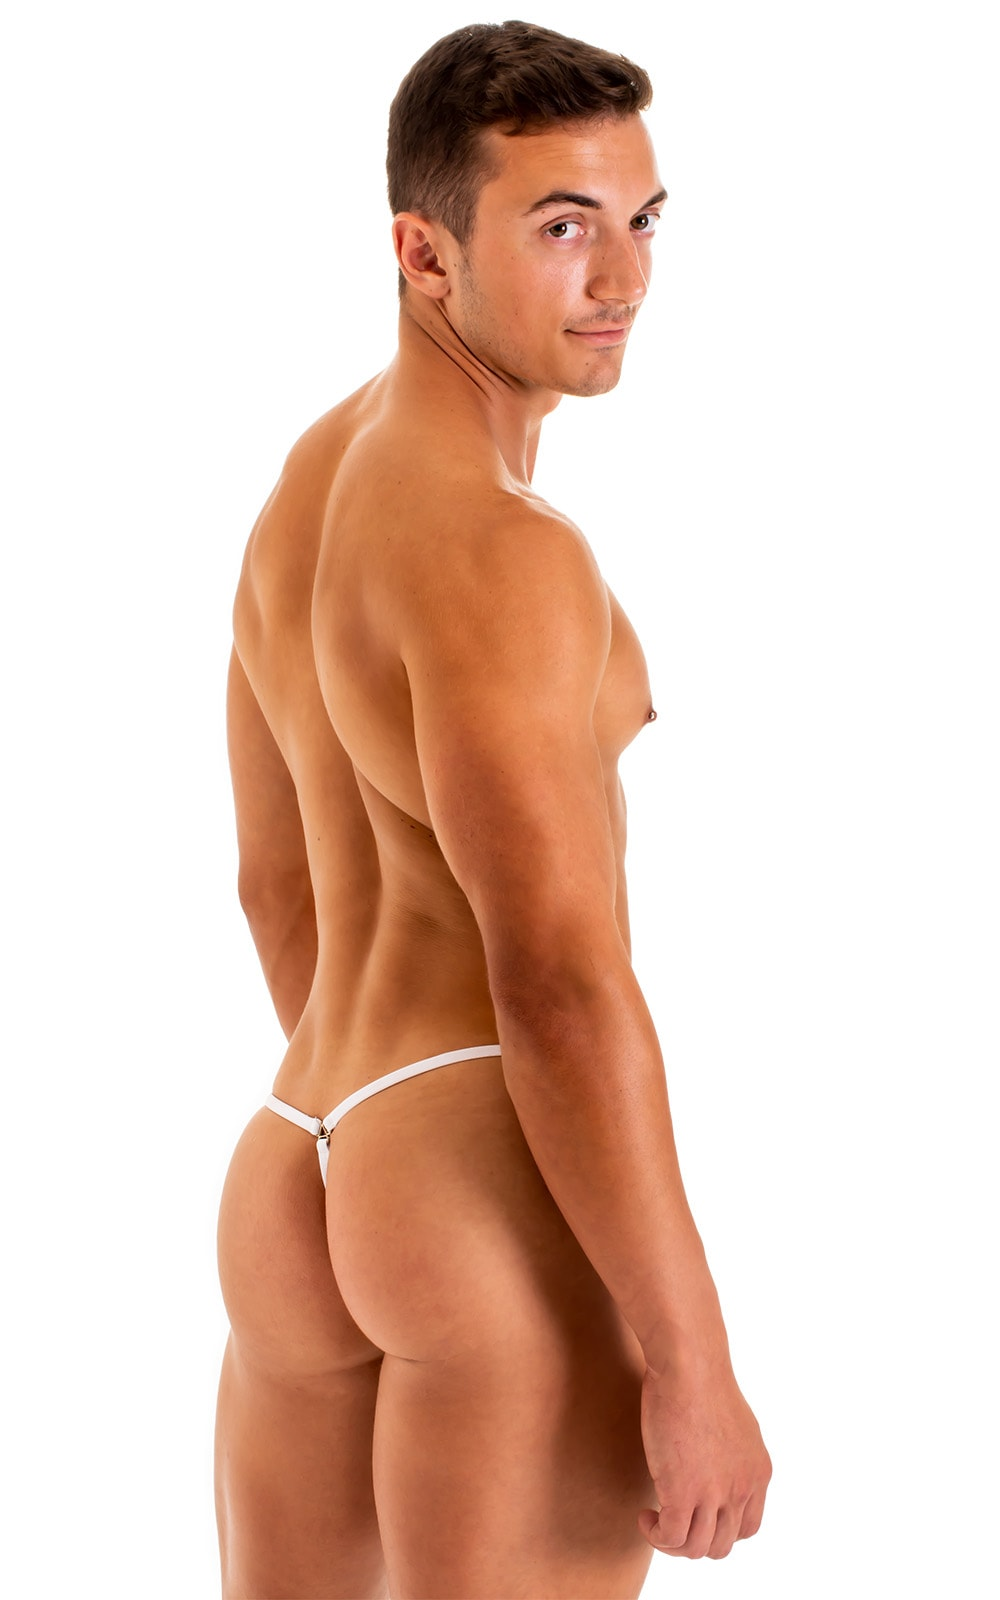 G String Swimsuit - Adjustable Pouch in Super ThinSkinz White 6.9